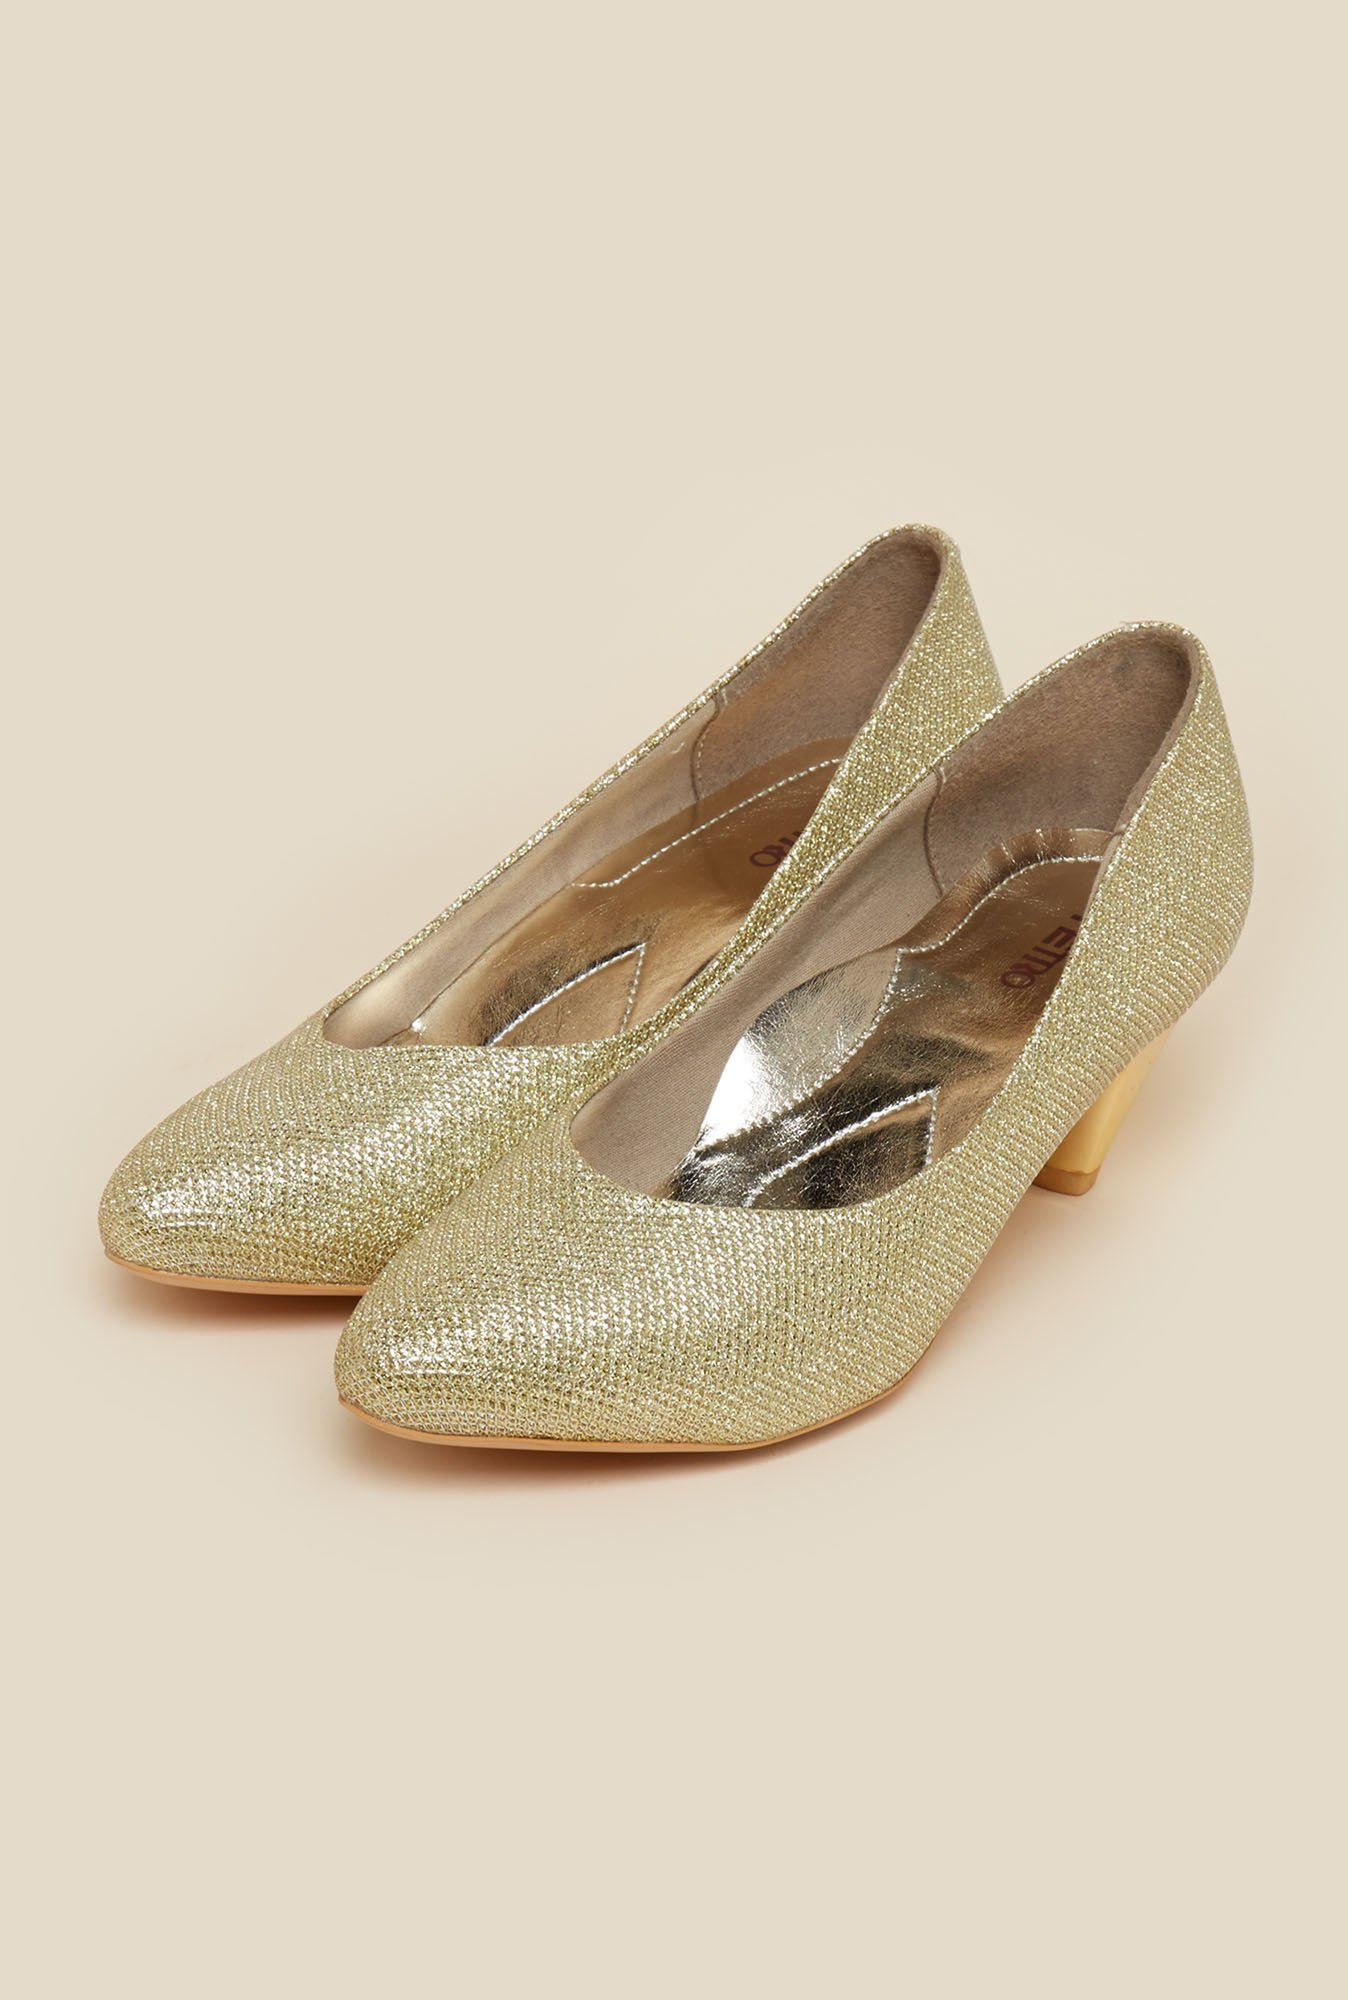 Metro Gold Slip-On Pumps